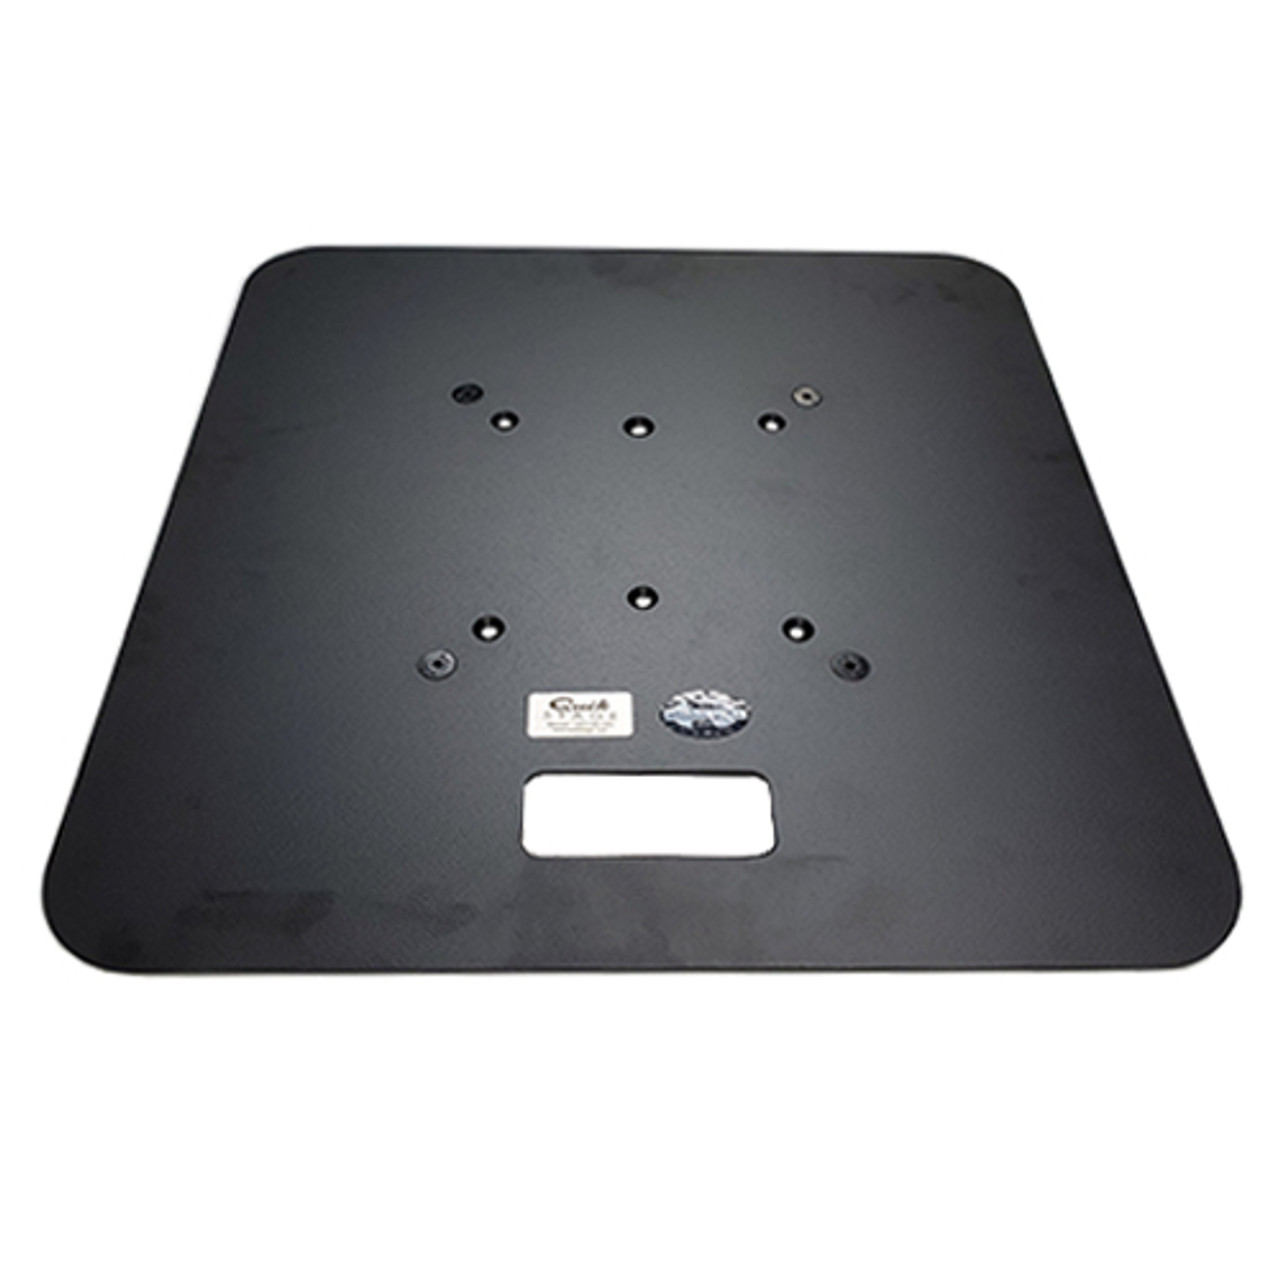 "Top selling 24"" x 24"" Best Value Black Steel Truss Base Plate. Fits Global Truss F23 F24 F33 F34 and Others. Shipping included! Angled Top view."